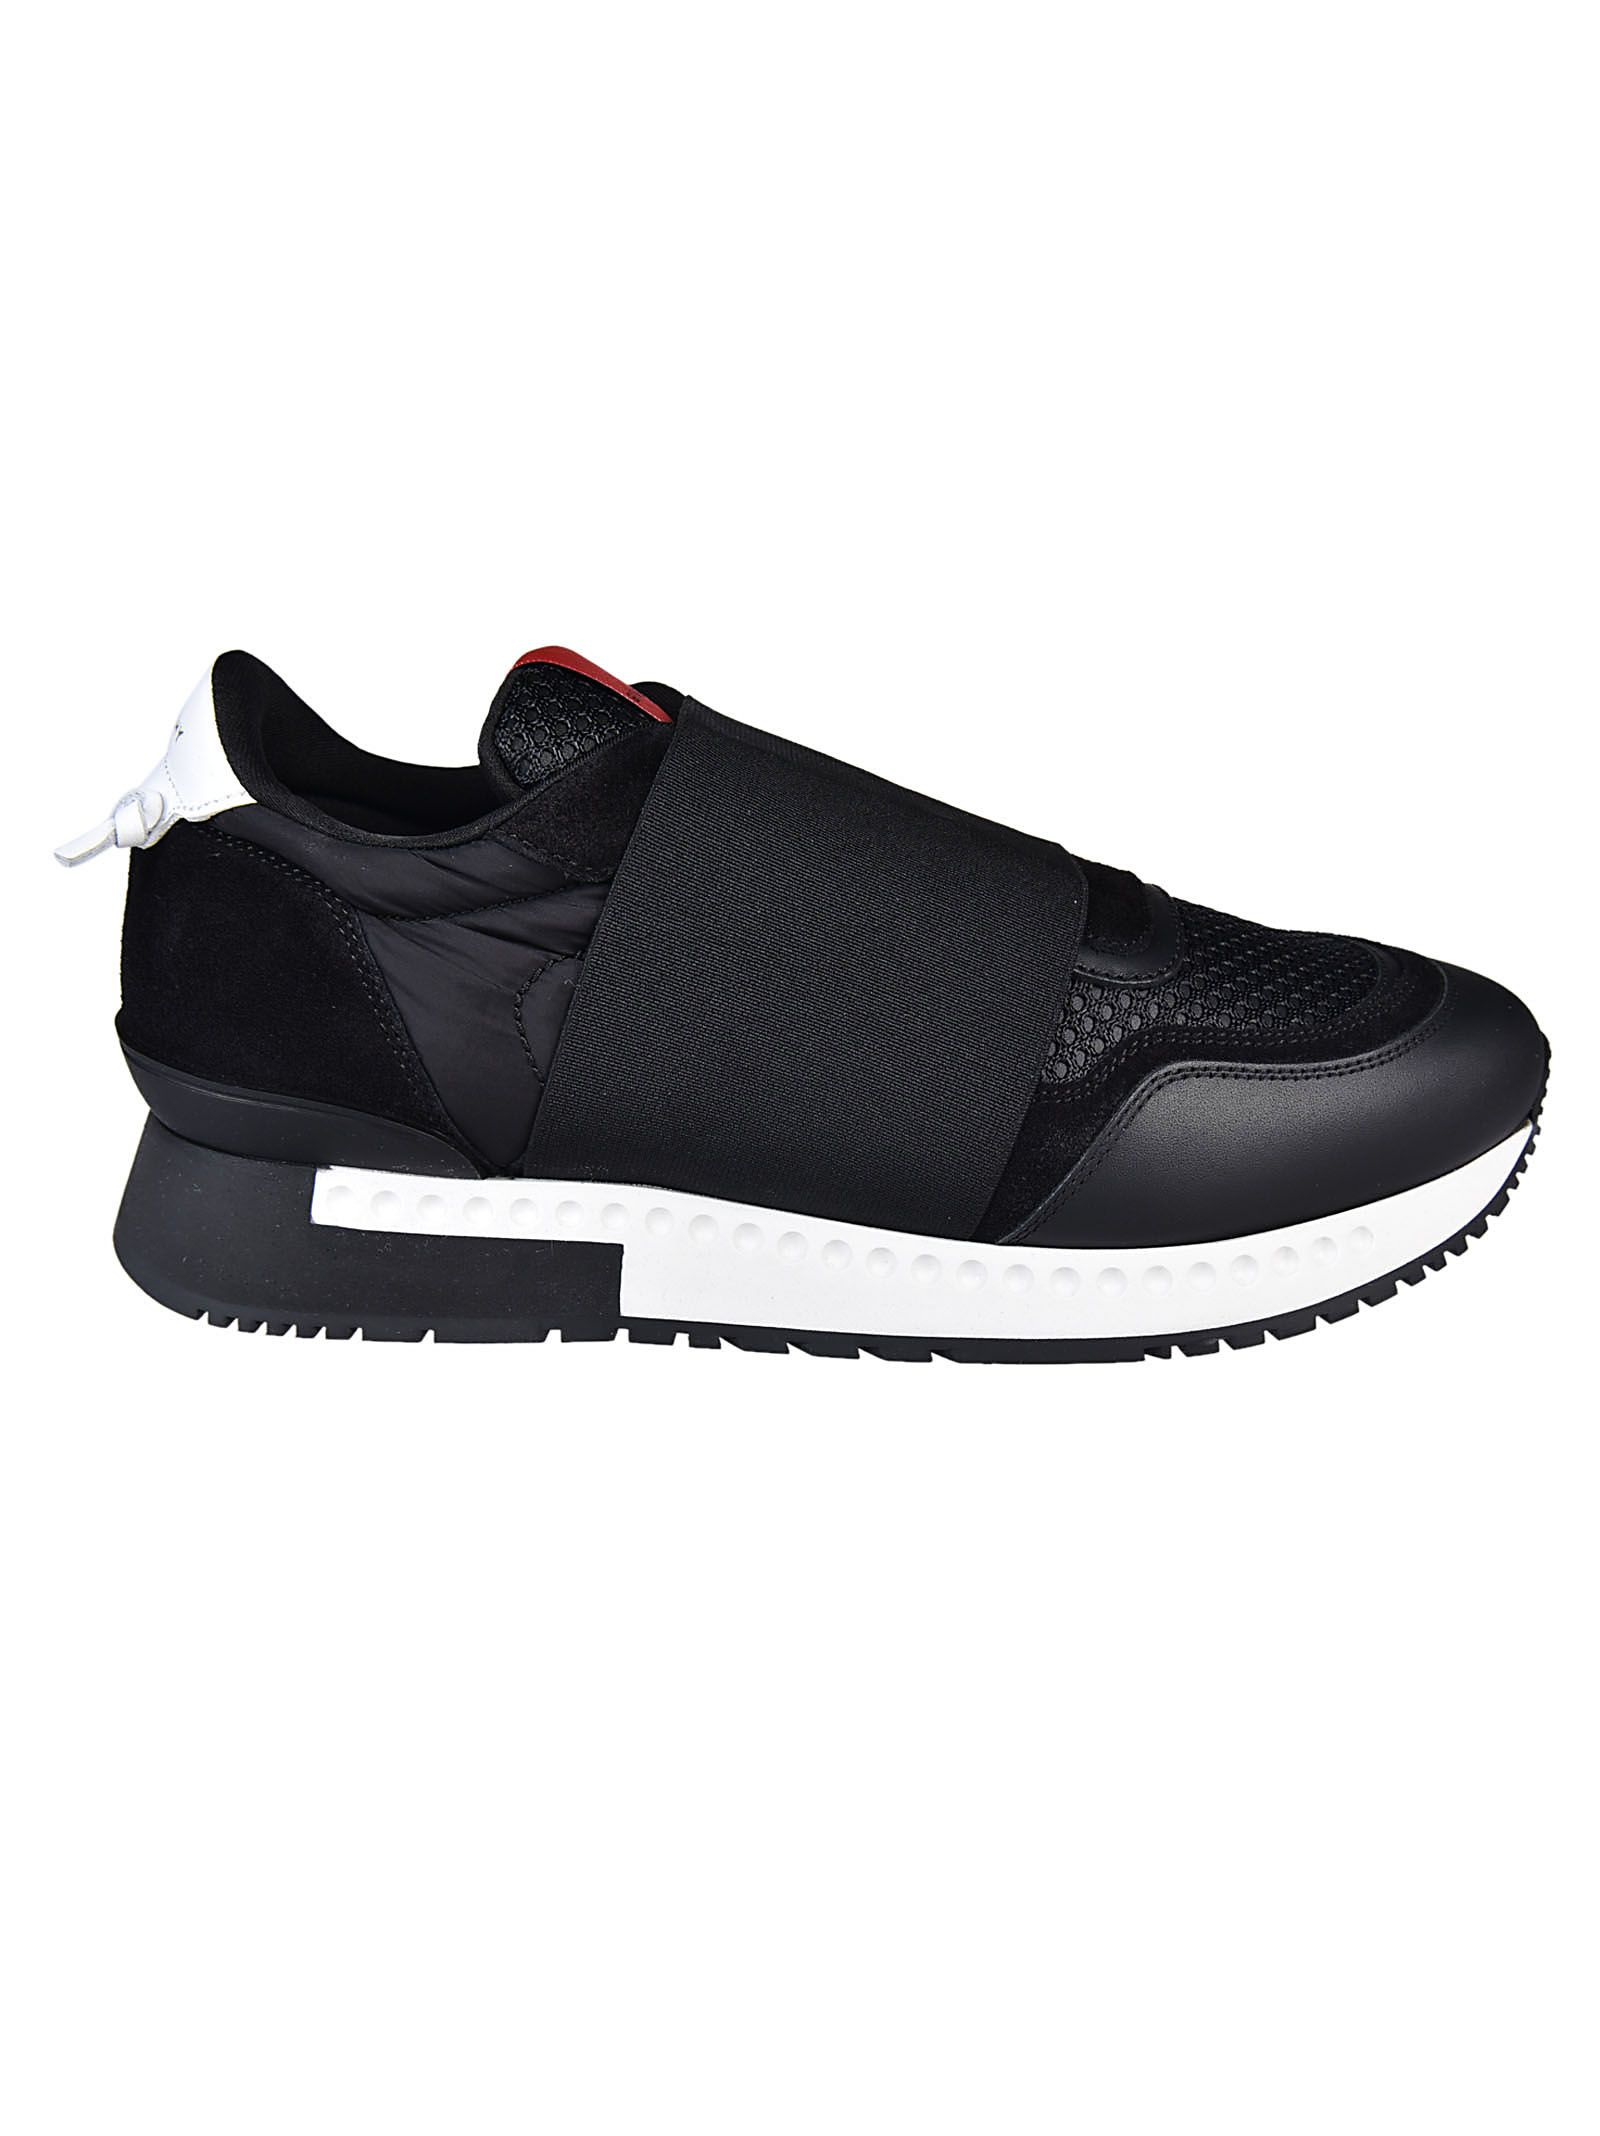 Givenchy Runner Elastic Slip-on Sneakers